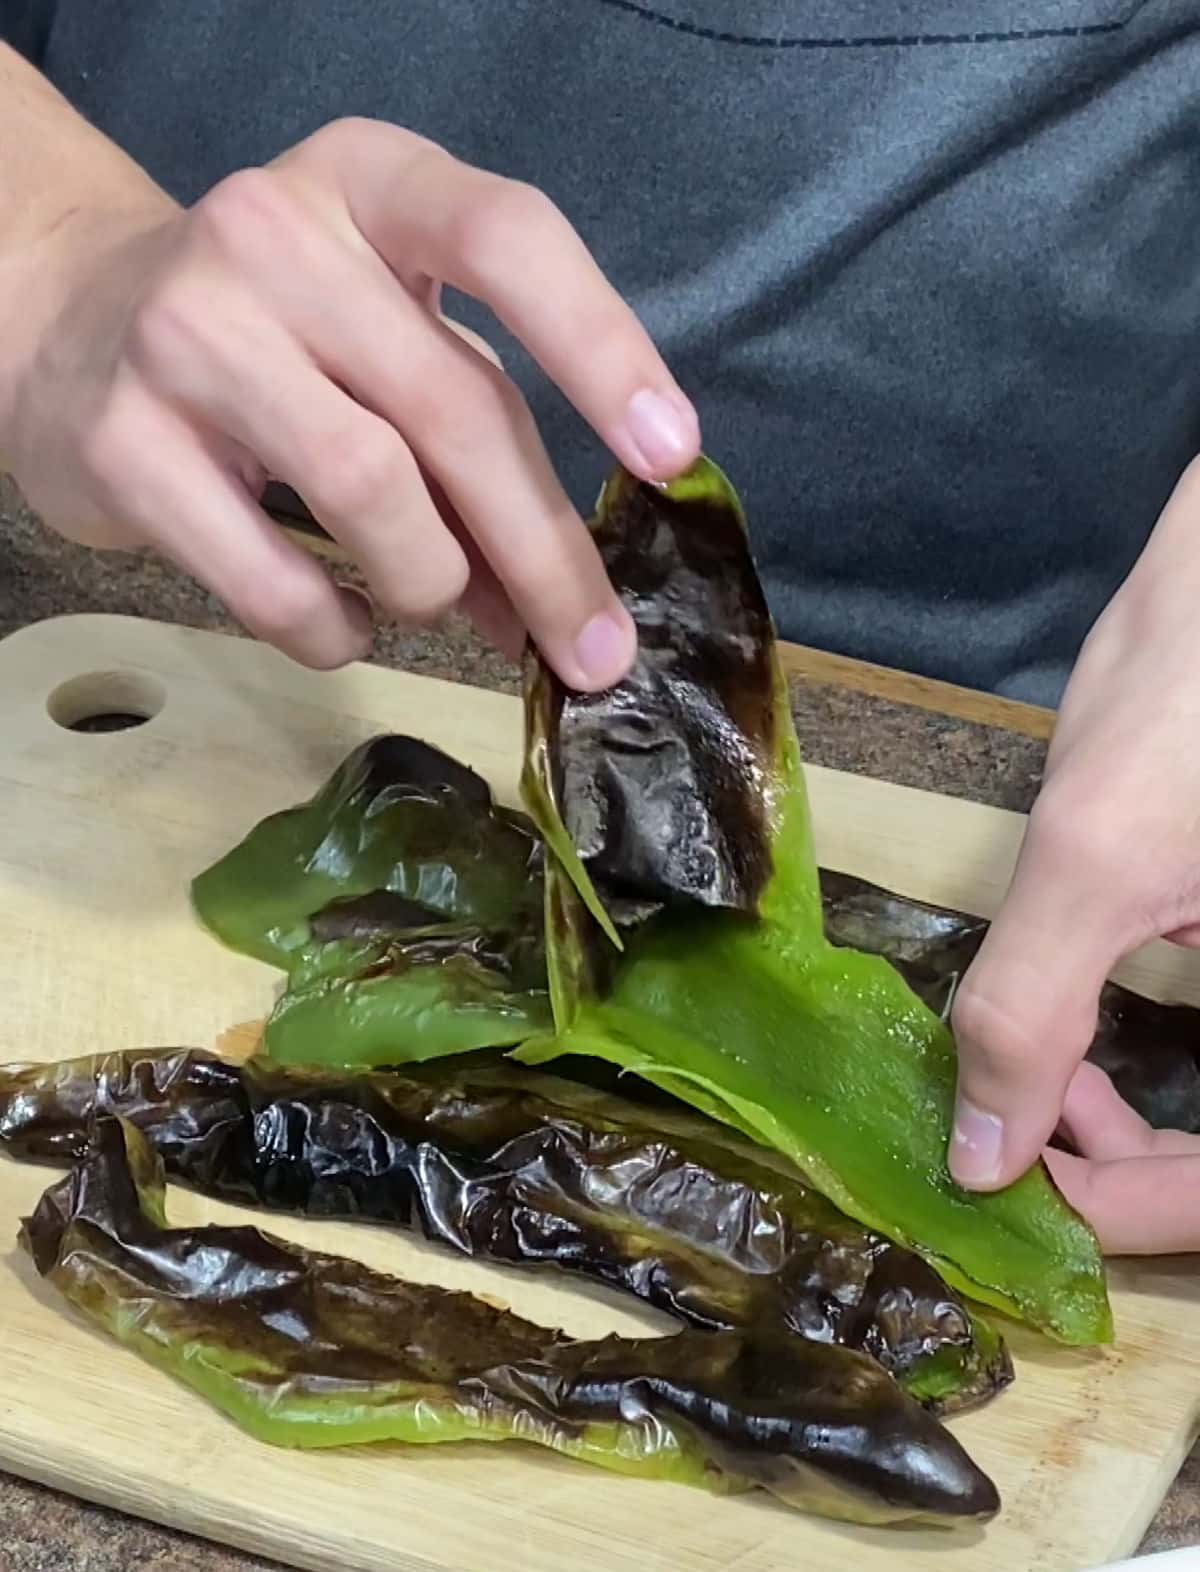 Peeling the charred skin from Anaheim peppers